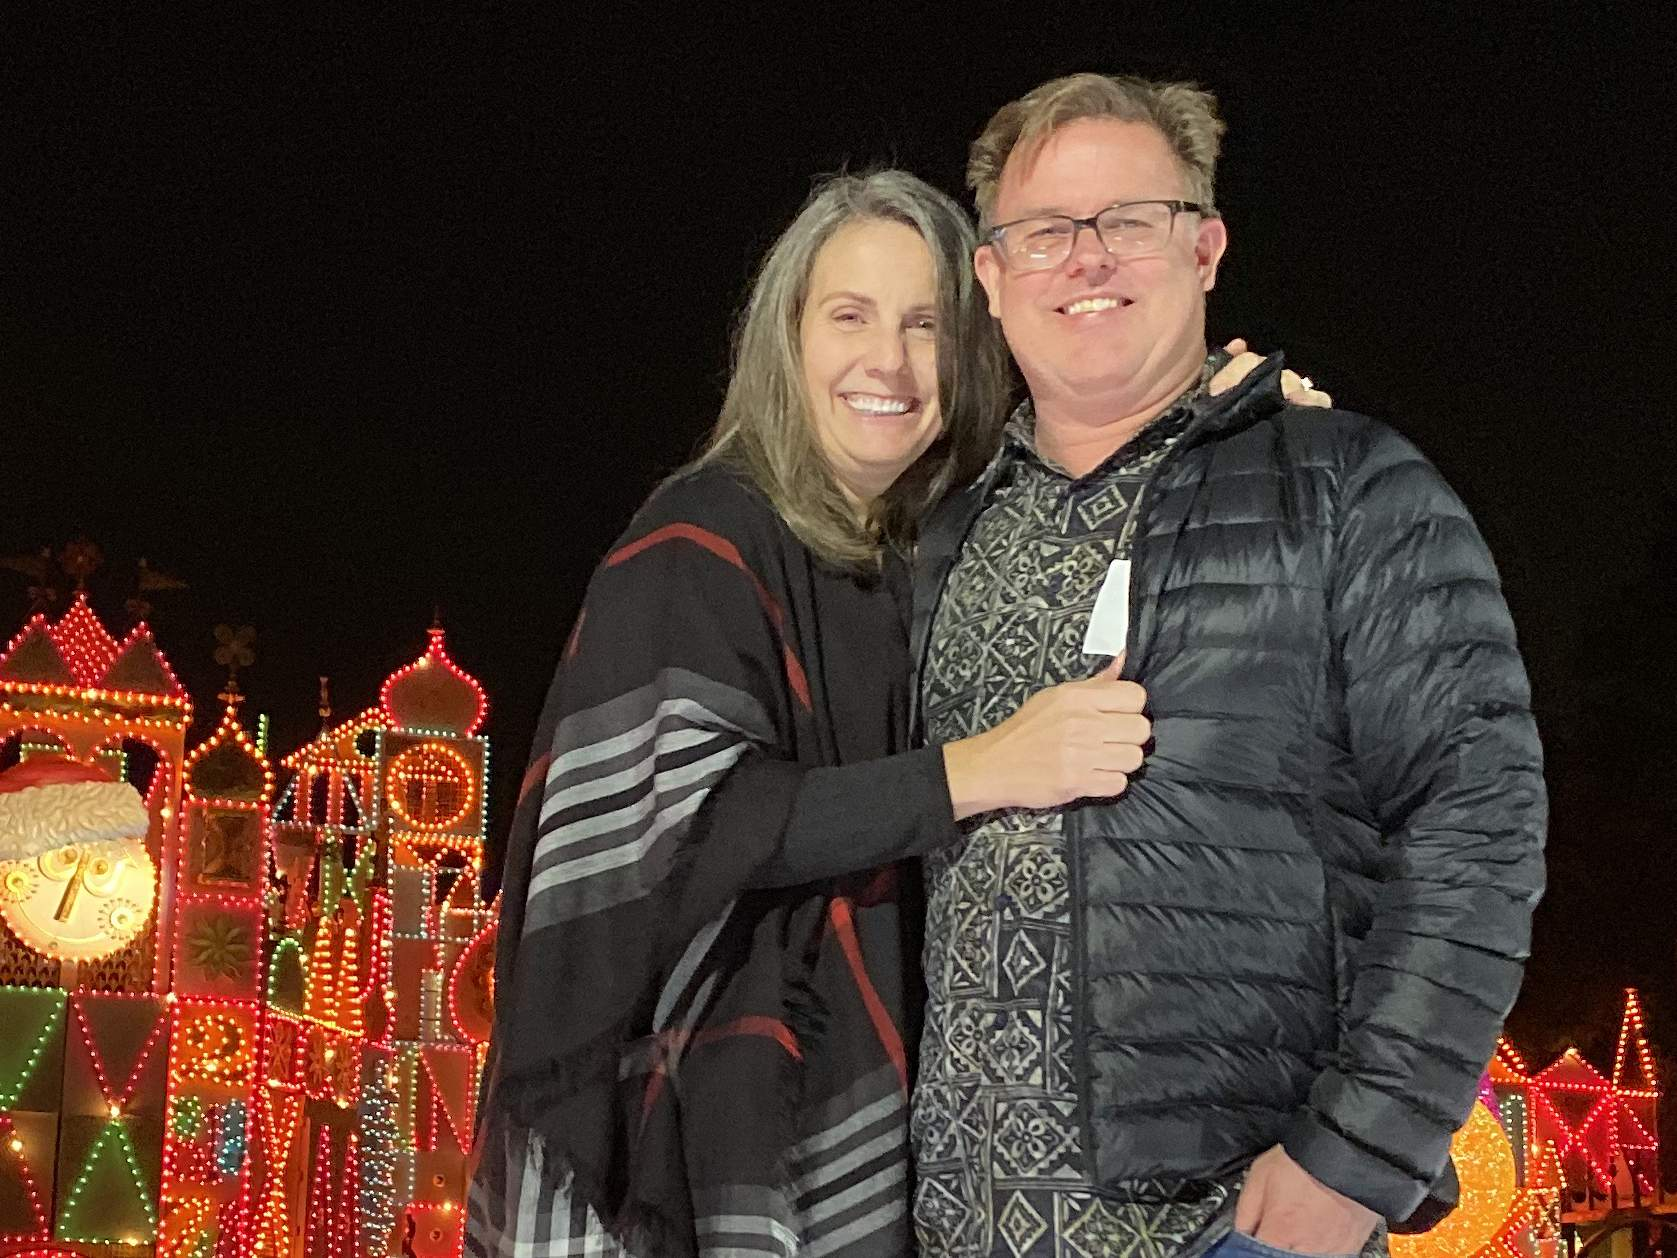 lori merkle and matt ford standing in front of light display